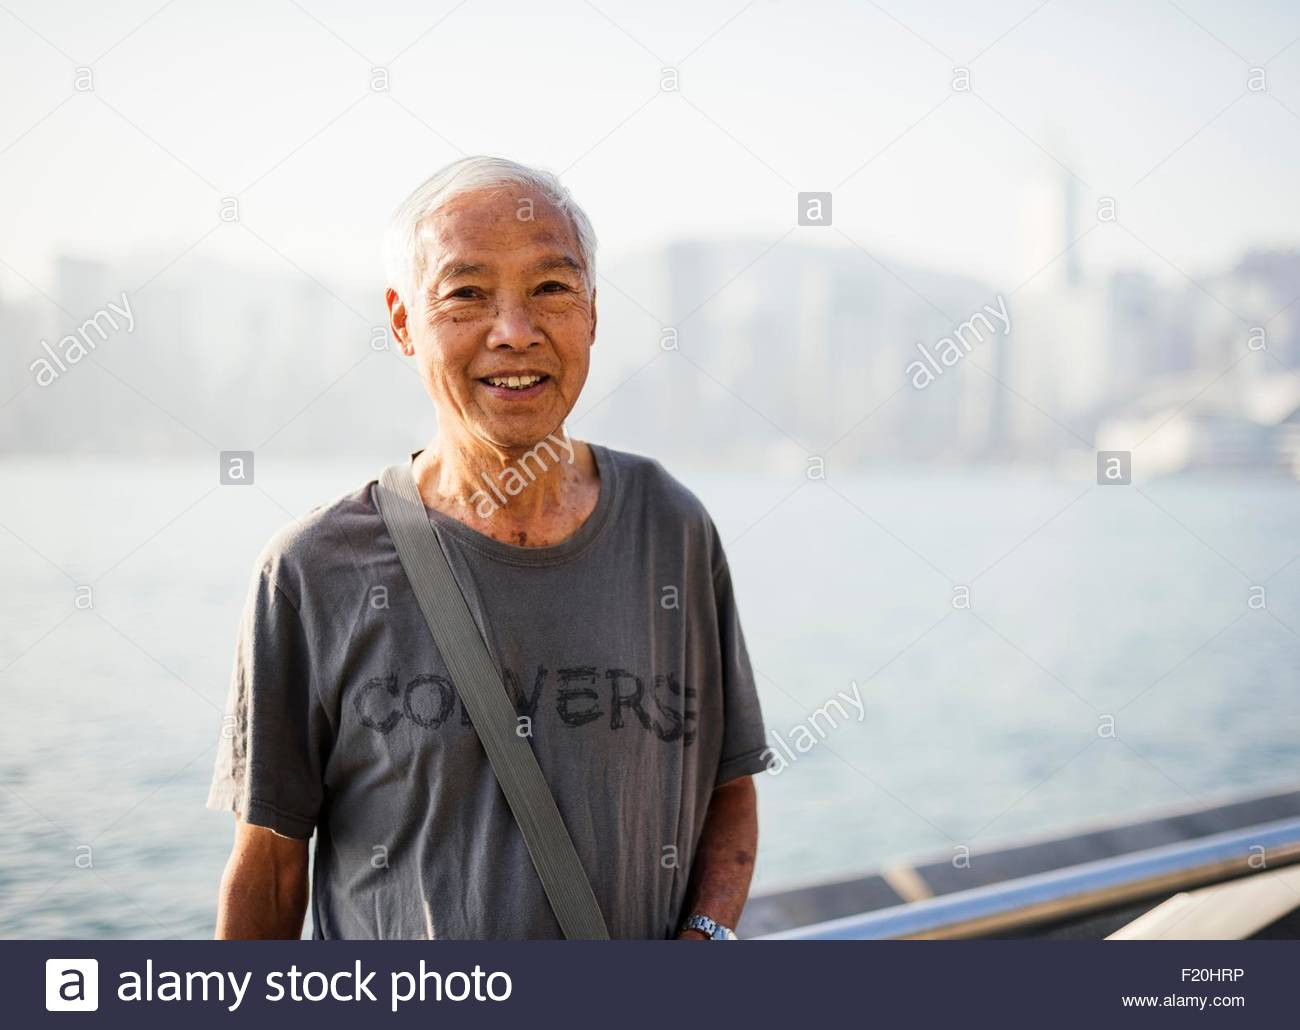 Portrait of grey haired senior man wearing tshirt looking at camera smiling - Stock Image